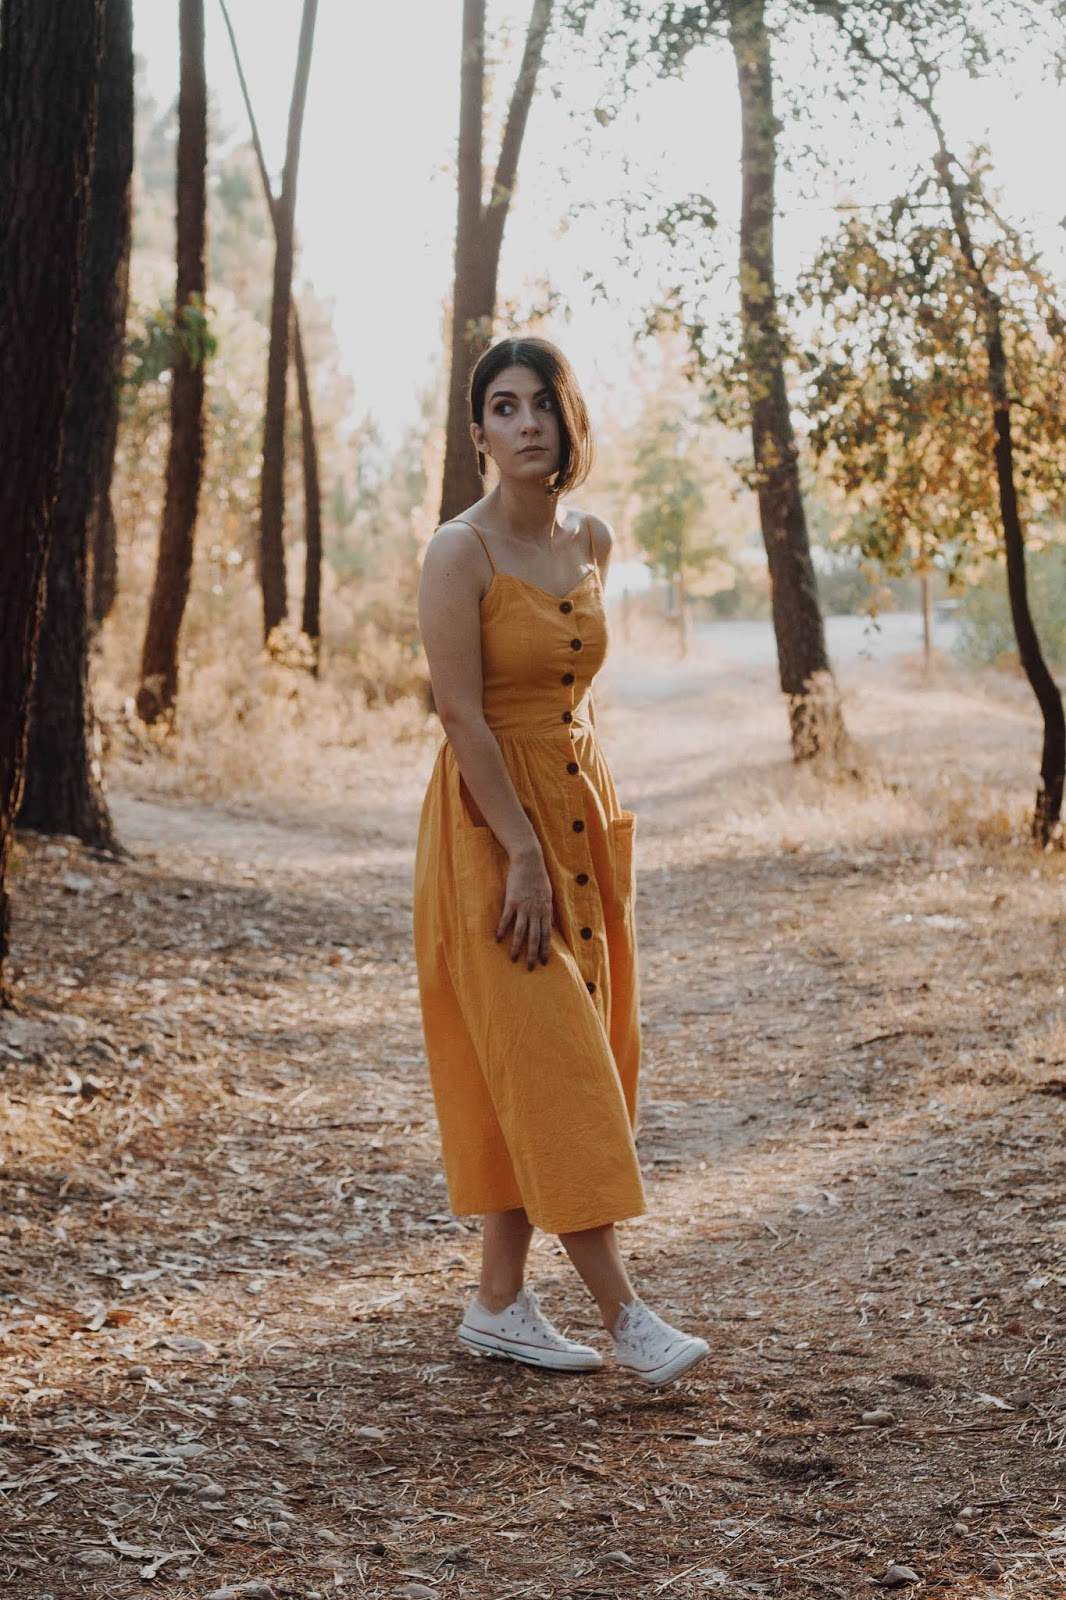 I have long yielded to yellow, but this kind of linen dress with buttons and pockets, very simple and flowy, was still in my wishlist. I went to Shein's website and there I found the perfect dress. In fact, I even found it in three different colors, but there were no doubts when I saw it in yellow.